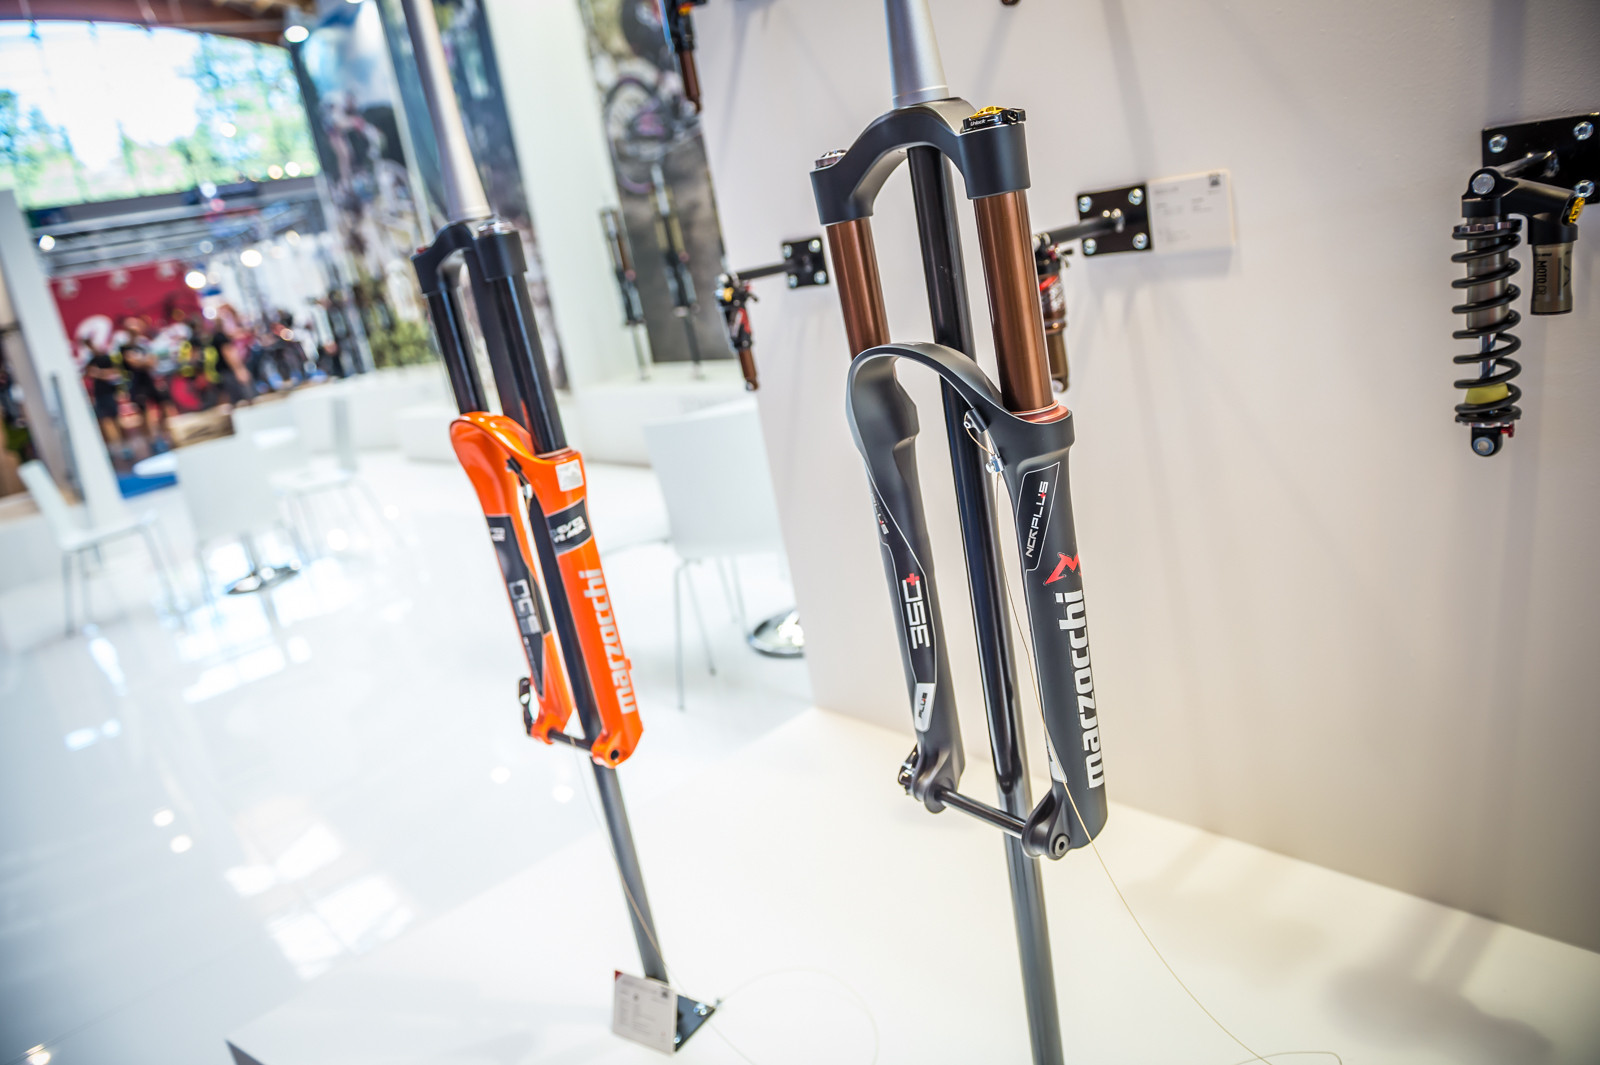 2016 Marzocchi at Eurobike - 2016 Mountain Bike Components at Eurobike - Mountain Biking Pictures - Vital MTB